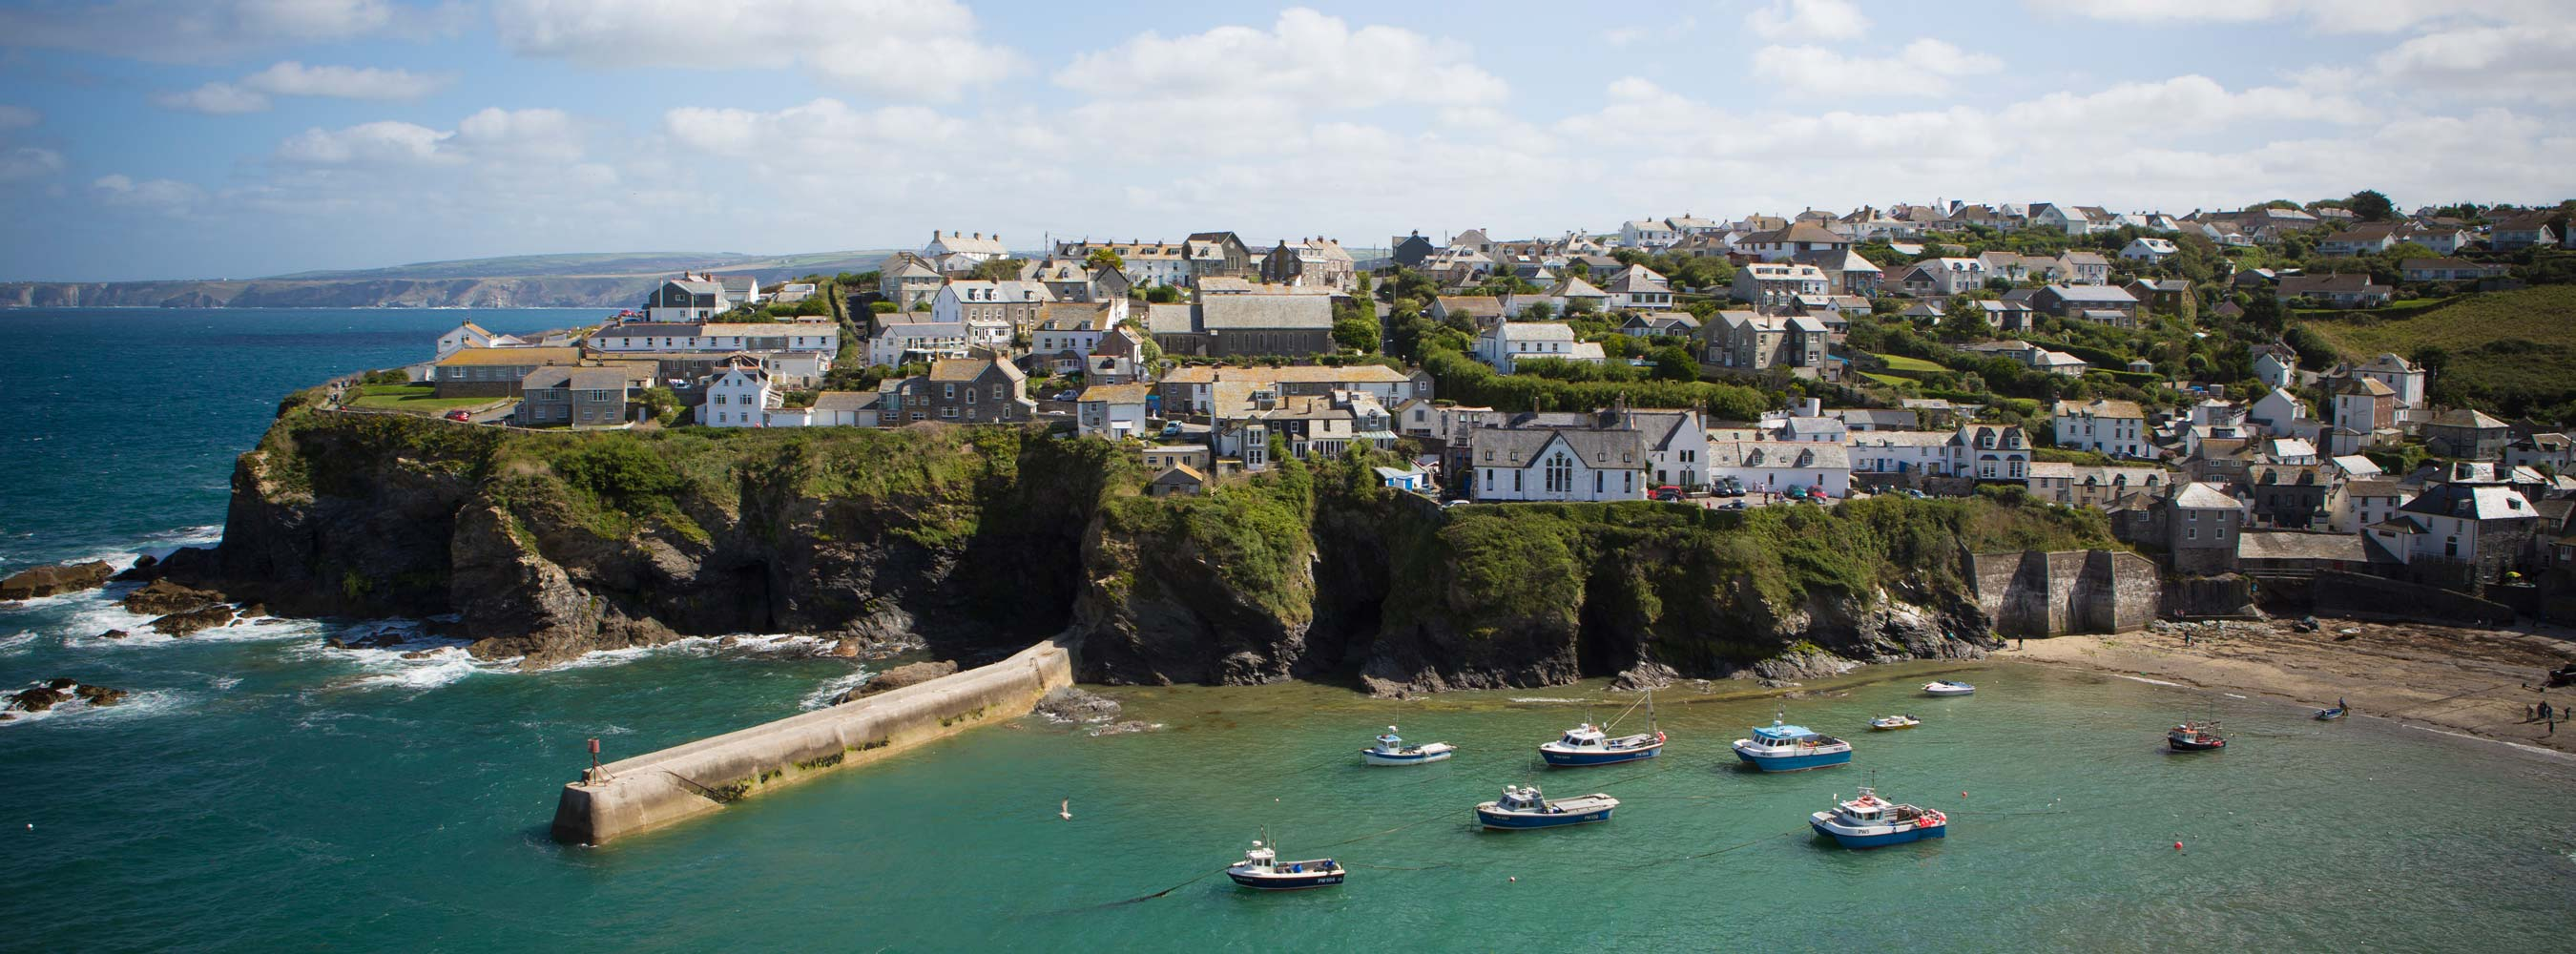 Location Port Isaac